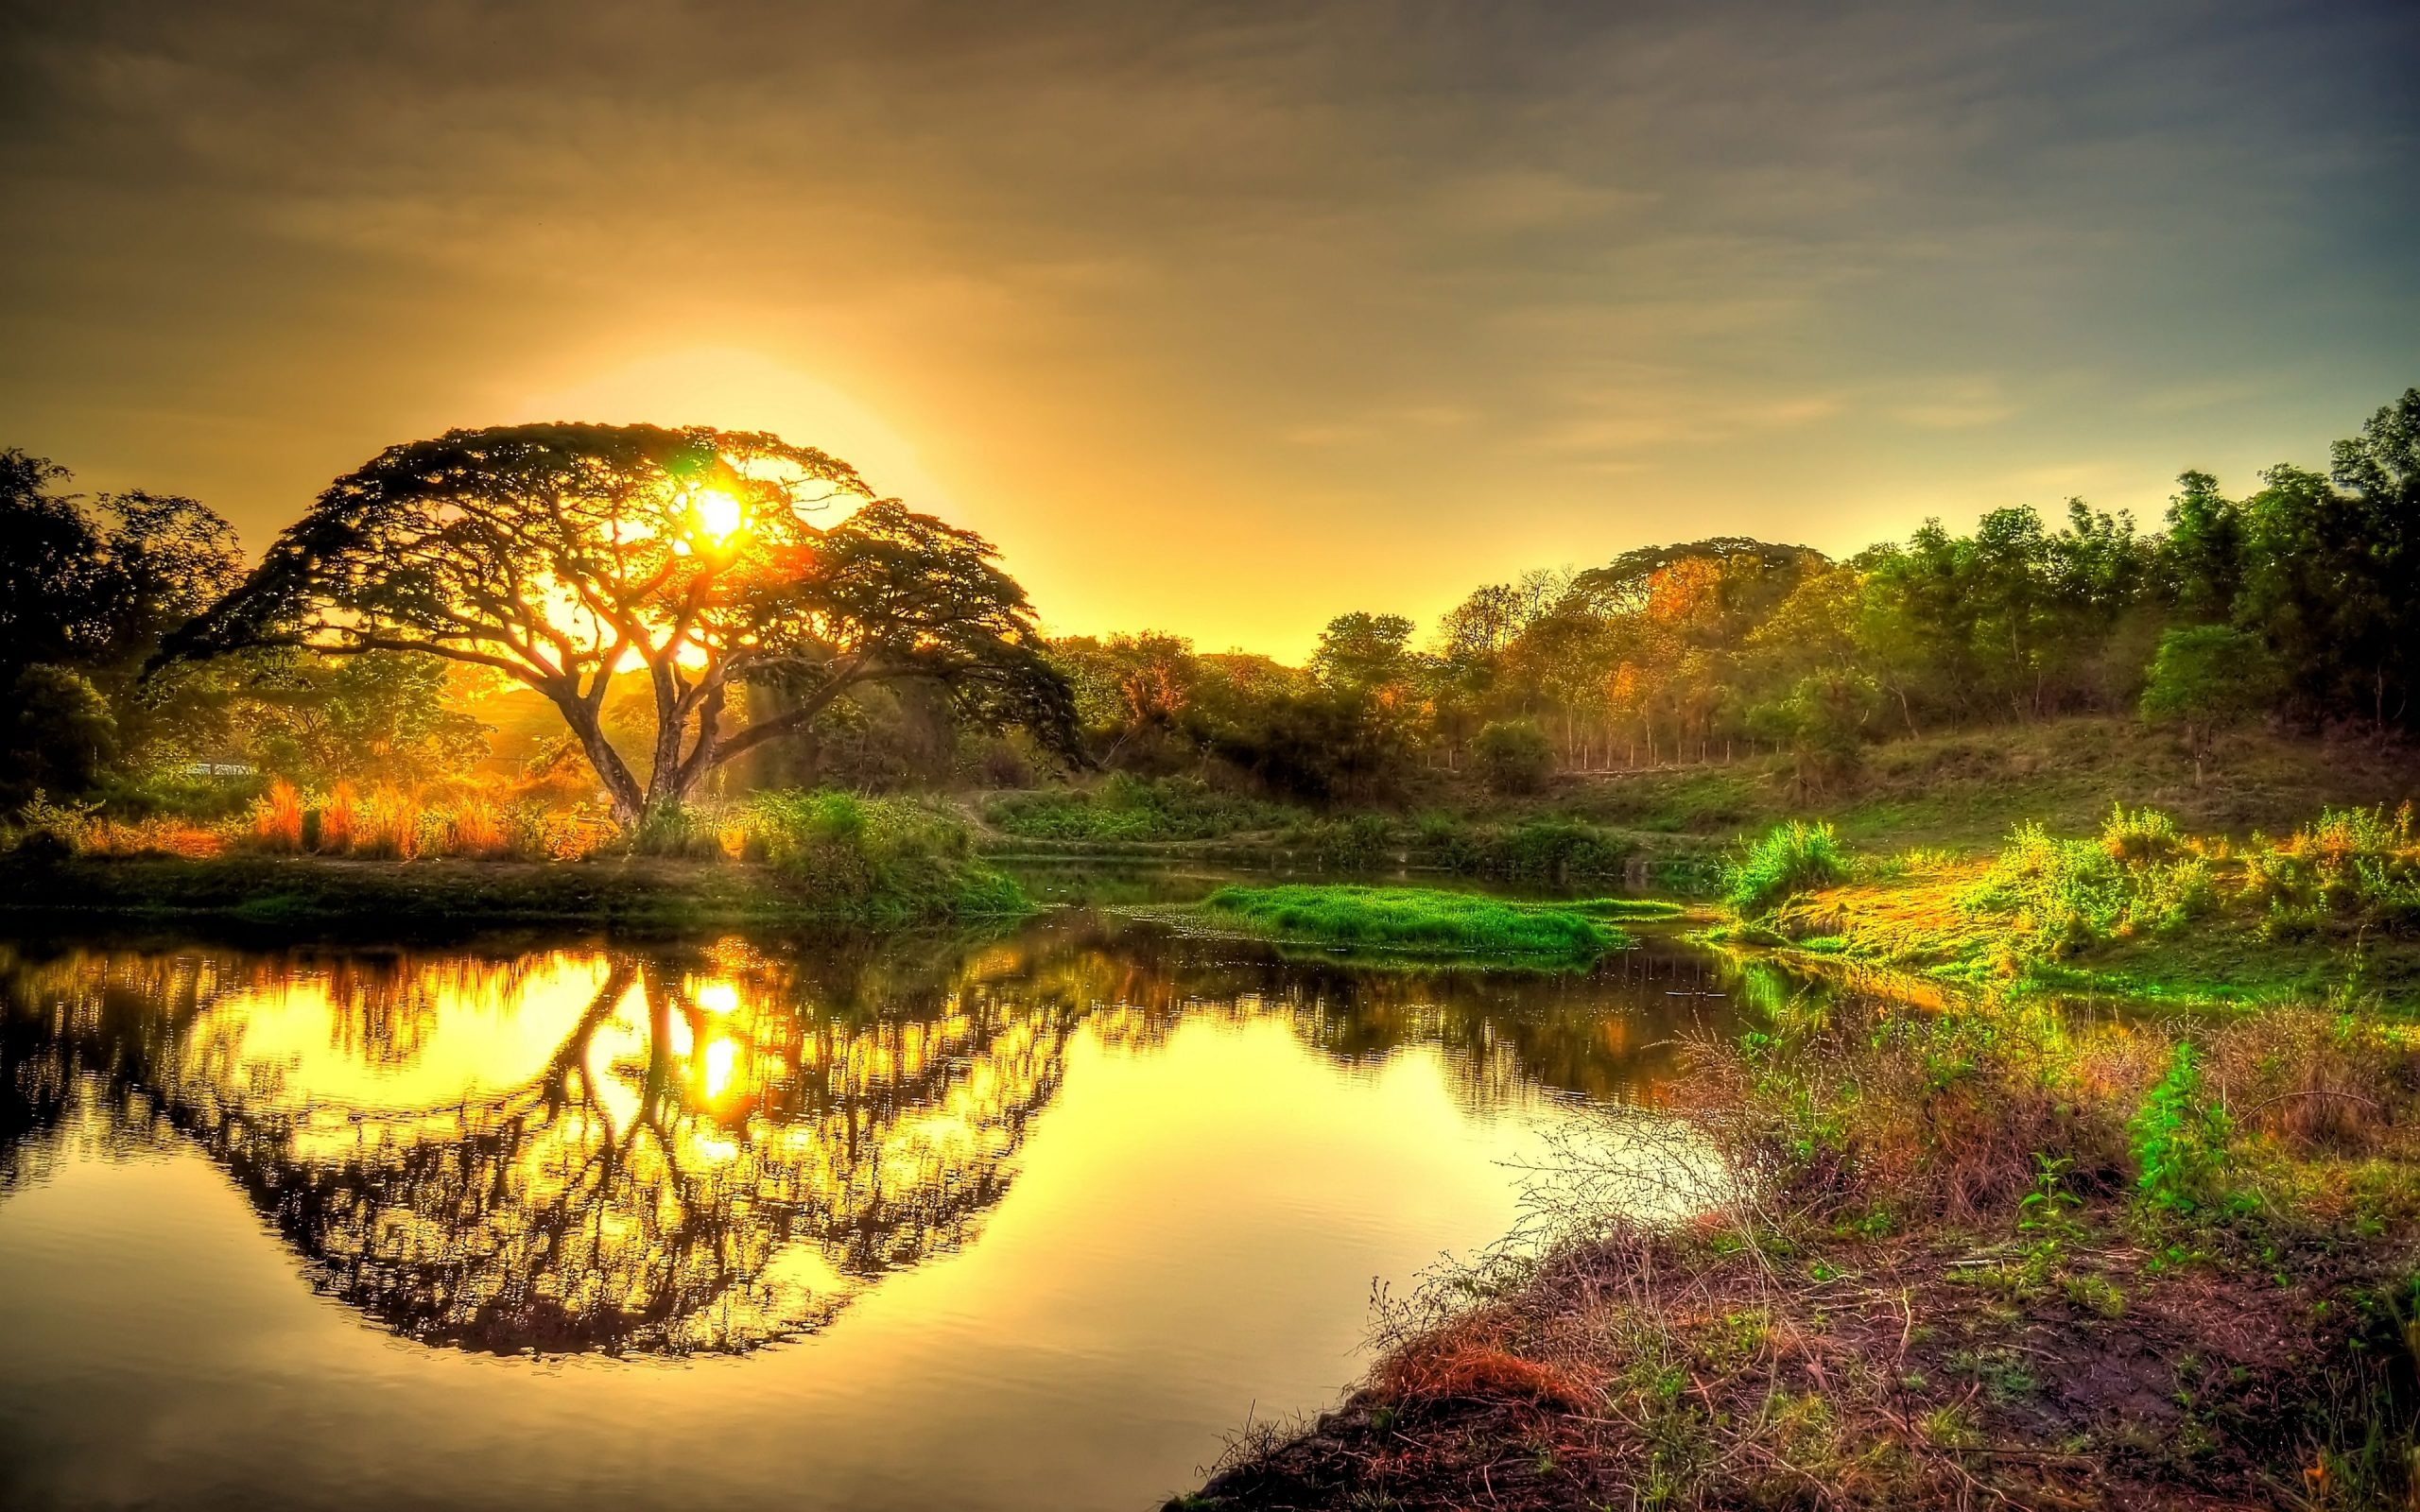 beautiful gold sunrise sky clouds tree lake reflection in water landscape 4k ultra hd wallpapers at wallpaper